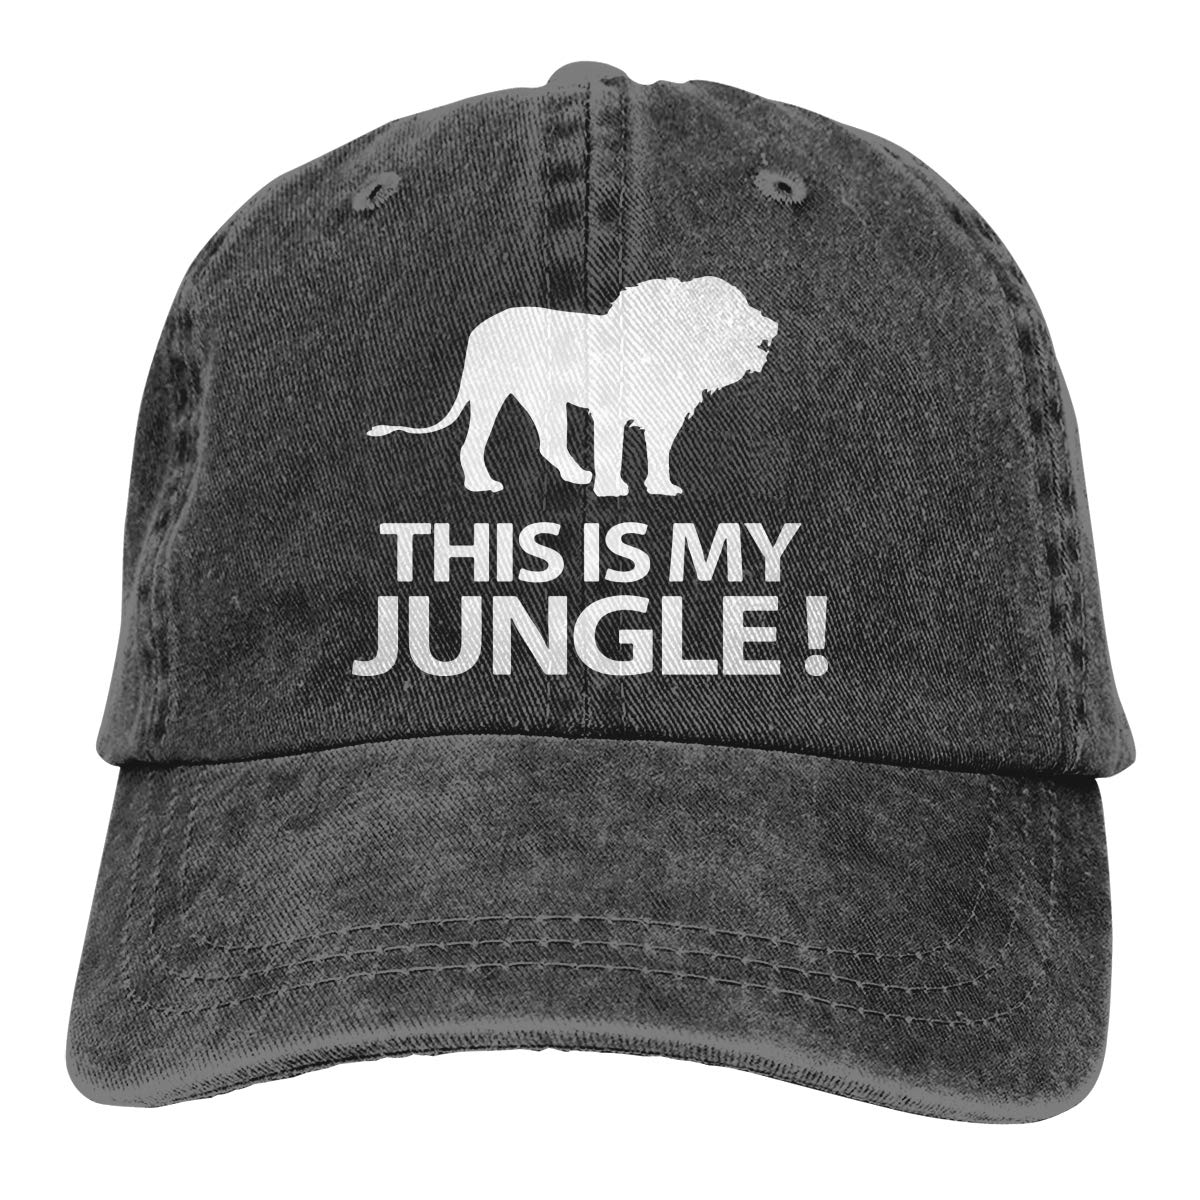 Q64 This is My Jungle Unisex Adult Cowboy Hat Outdoor Sports Hat Adjustable Truck Driver Hat